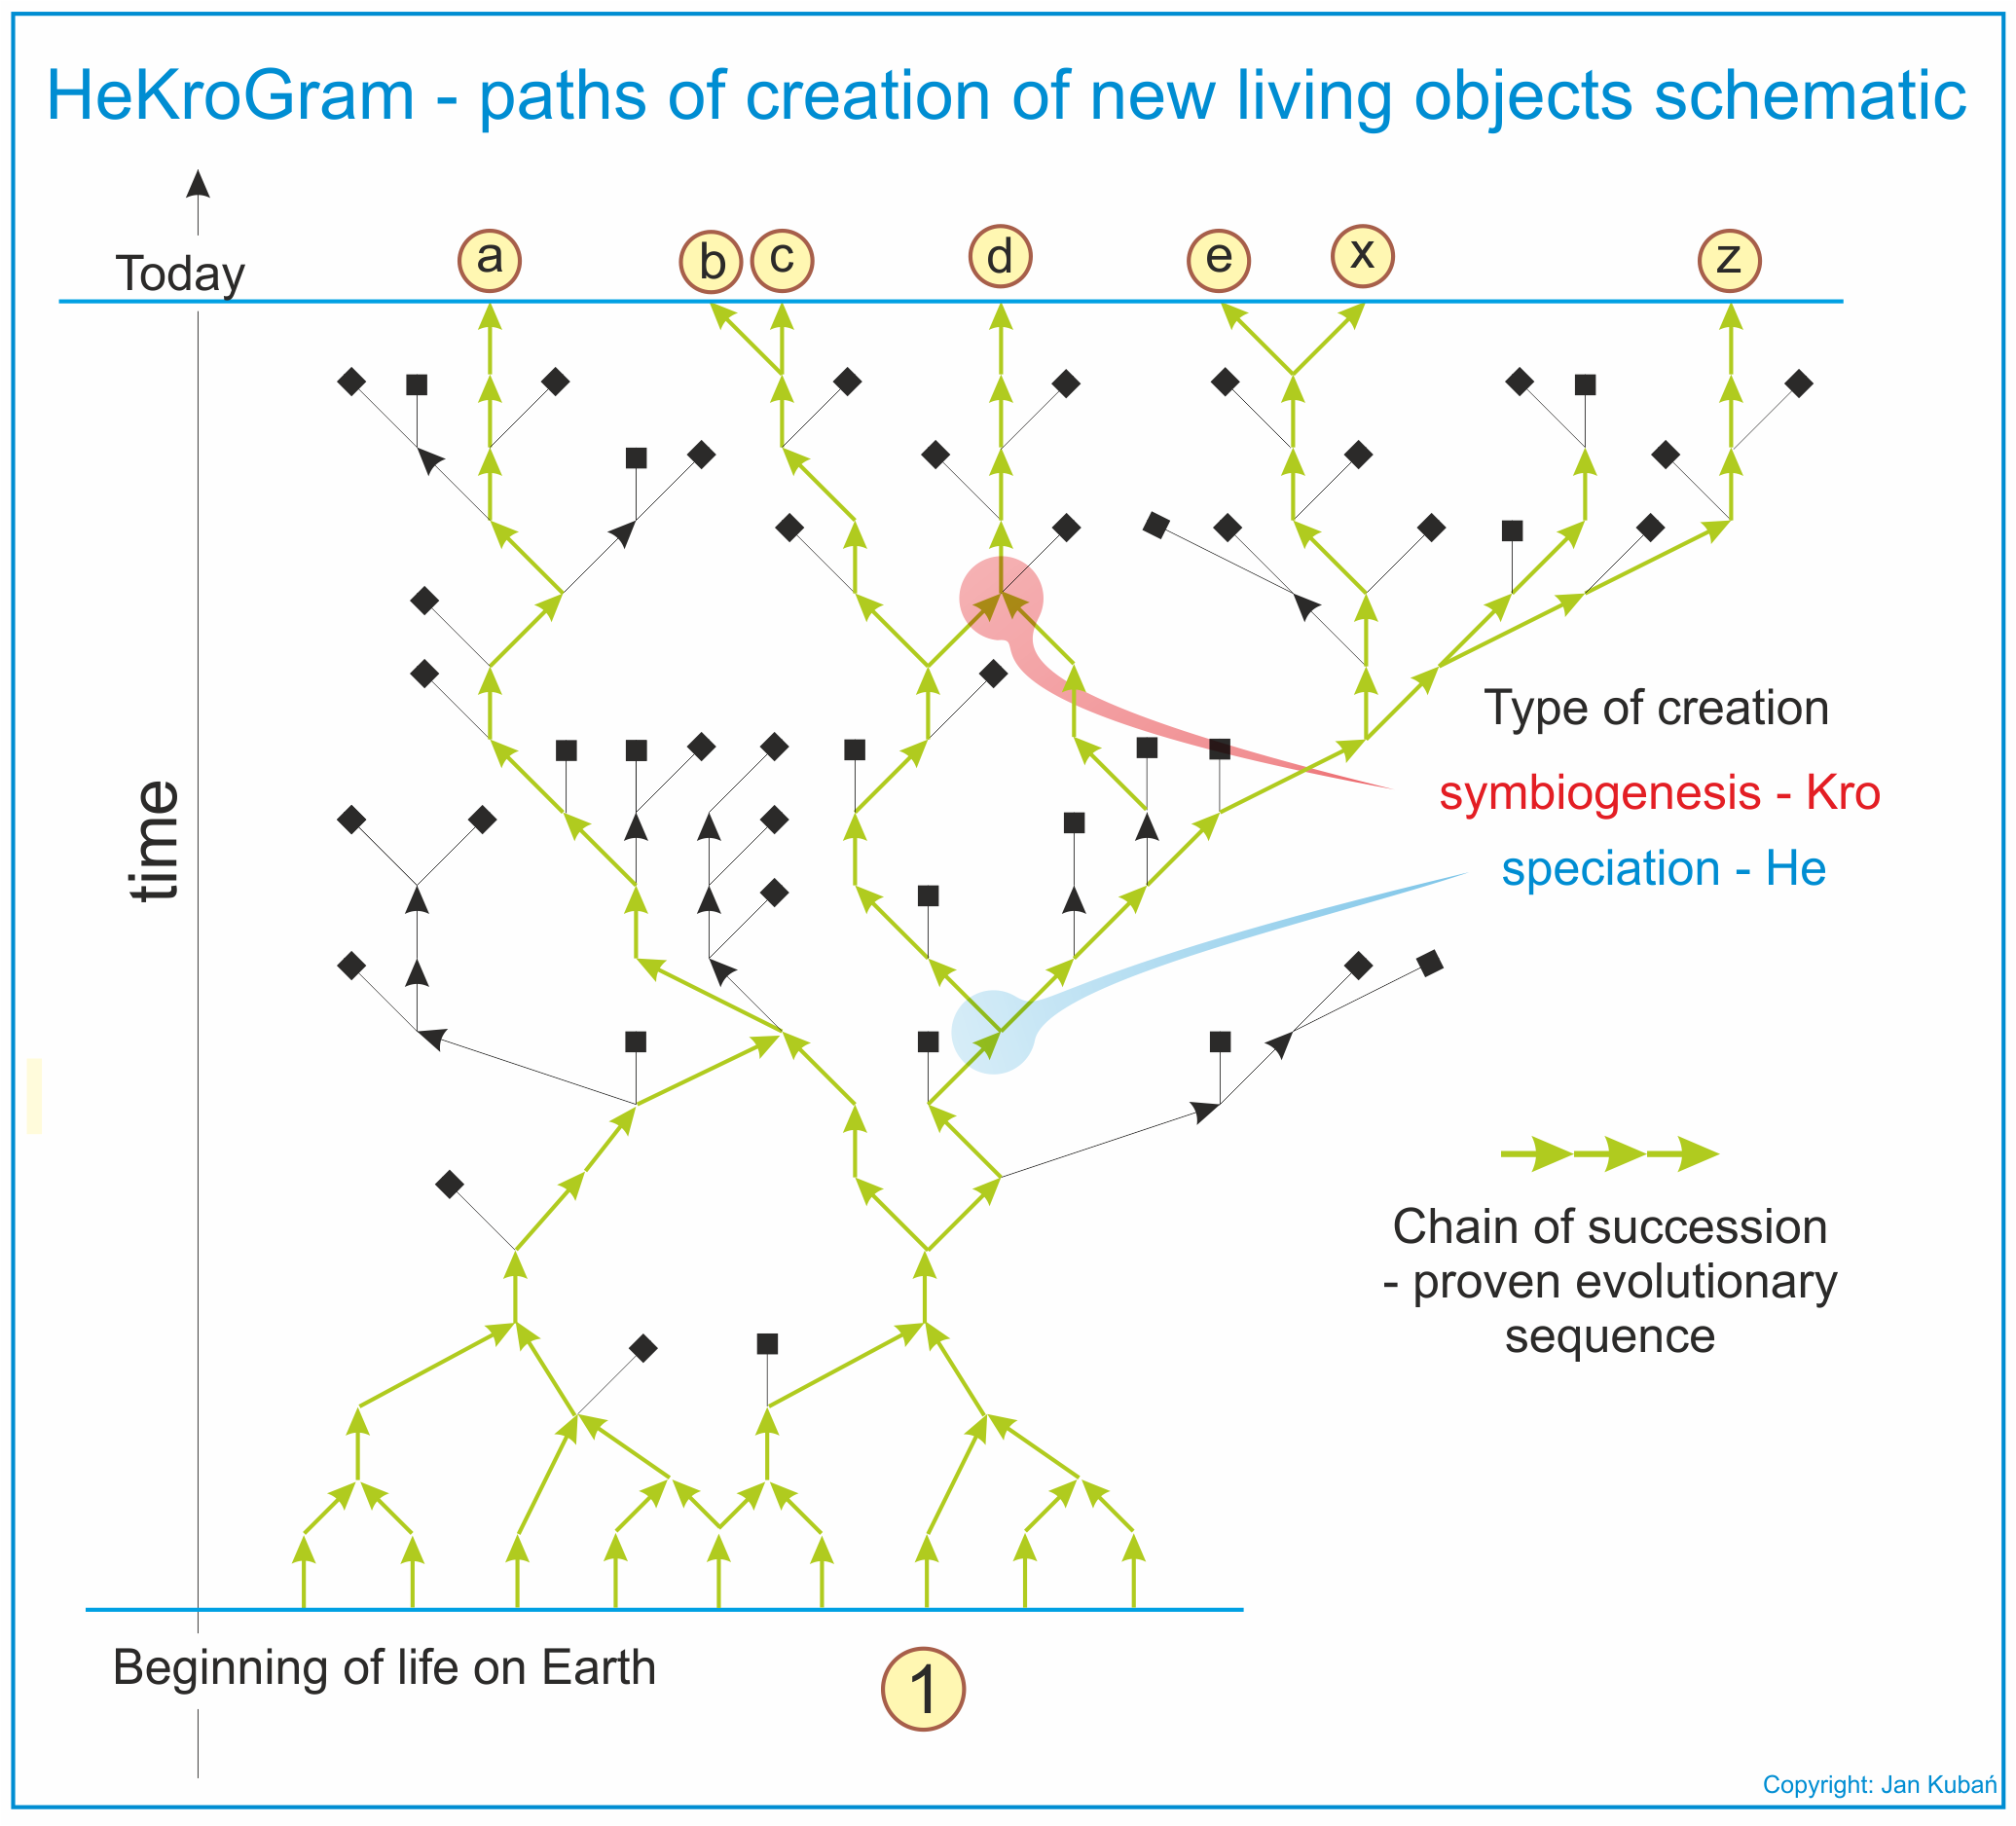 HeKroGram - paths of creation of new living objects schematic